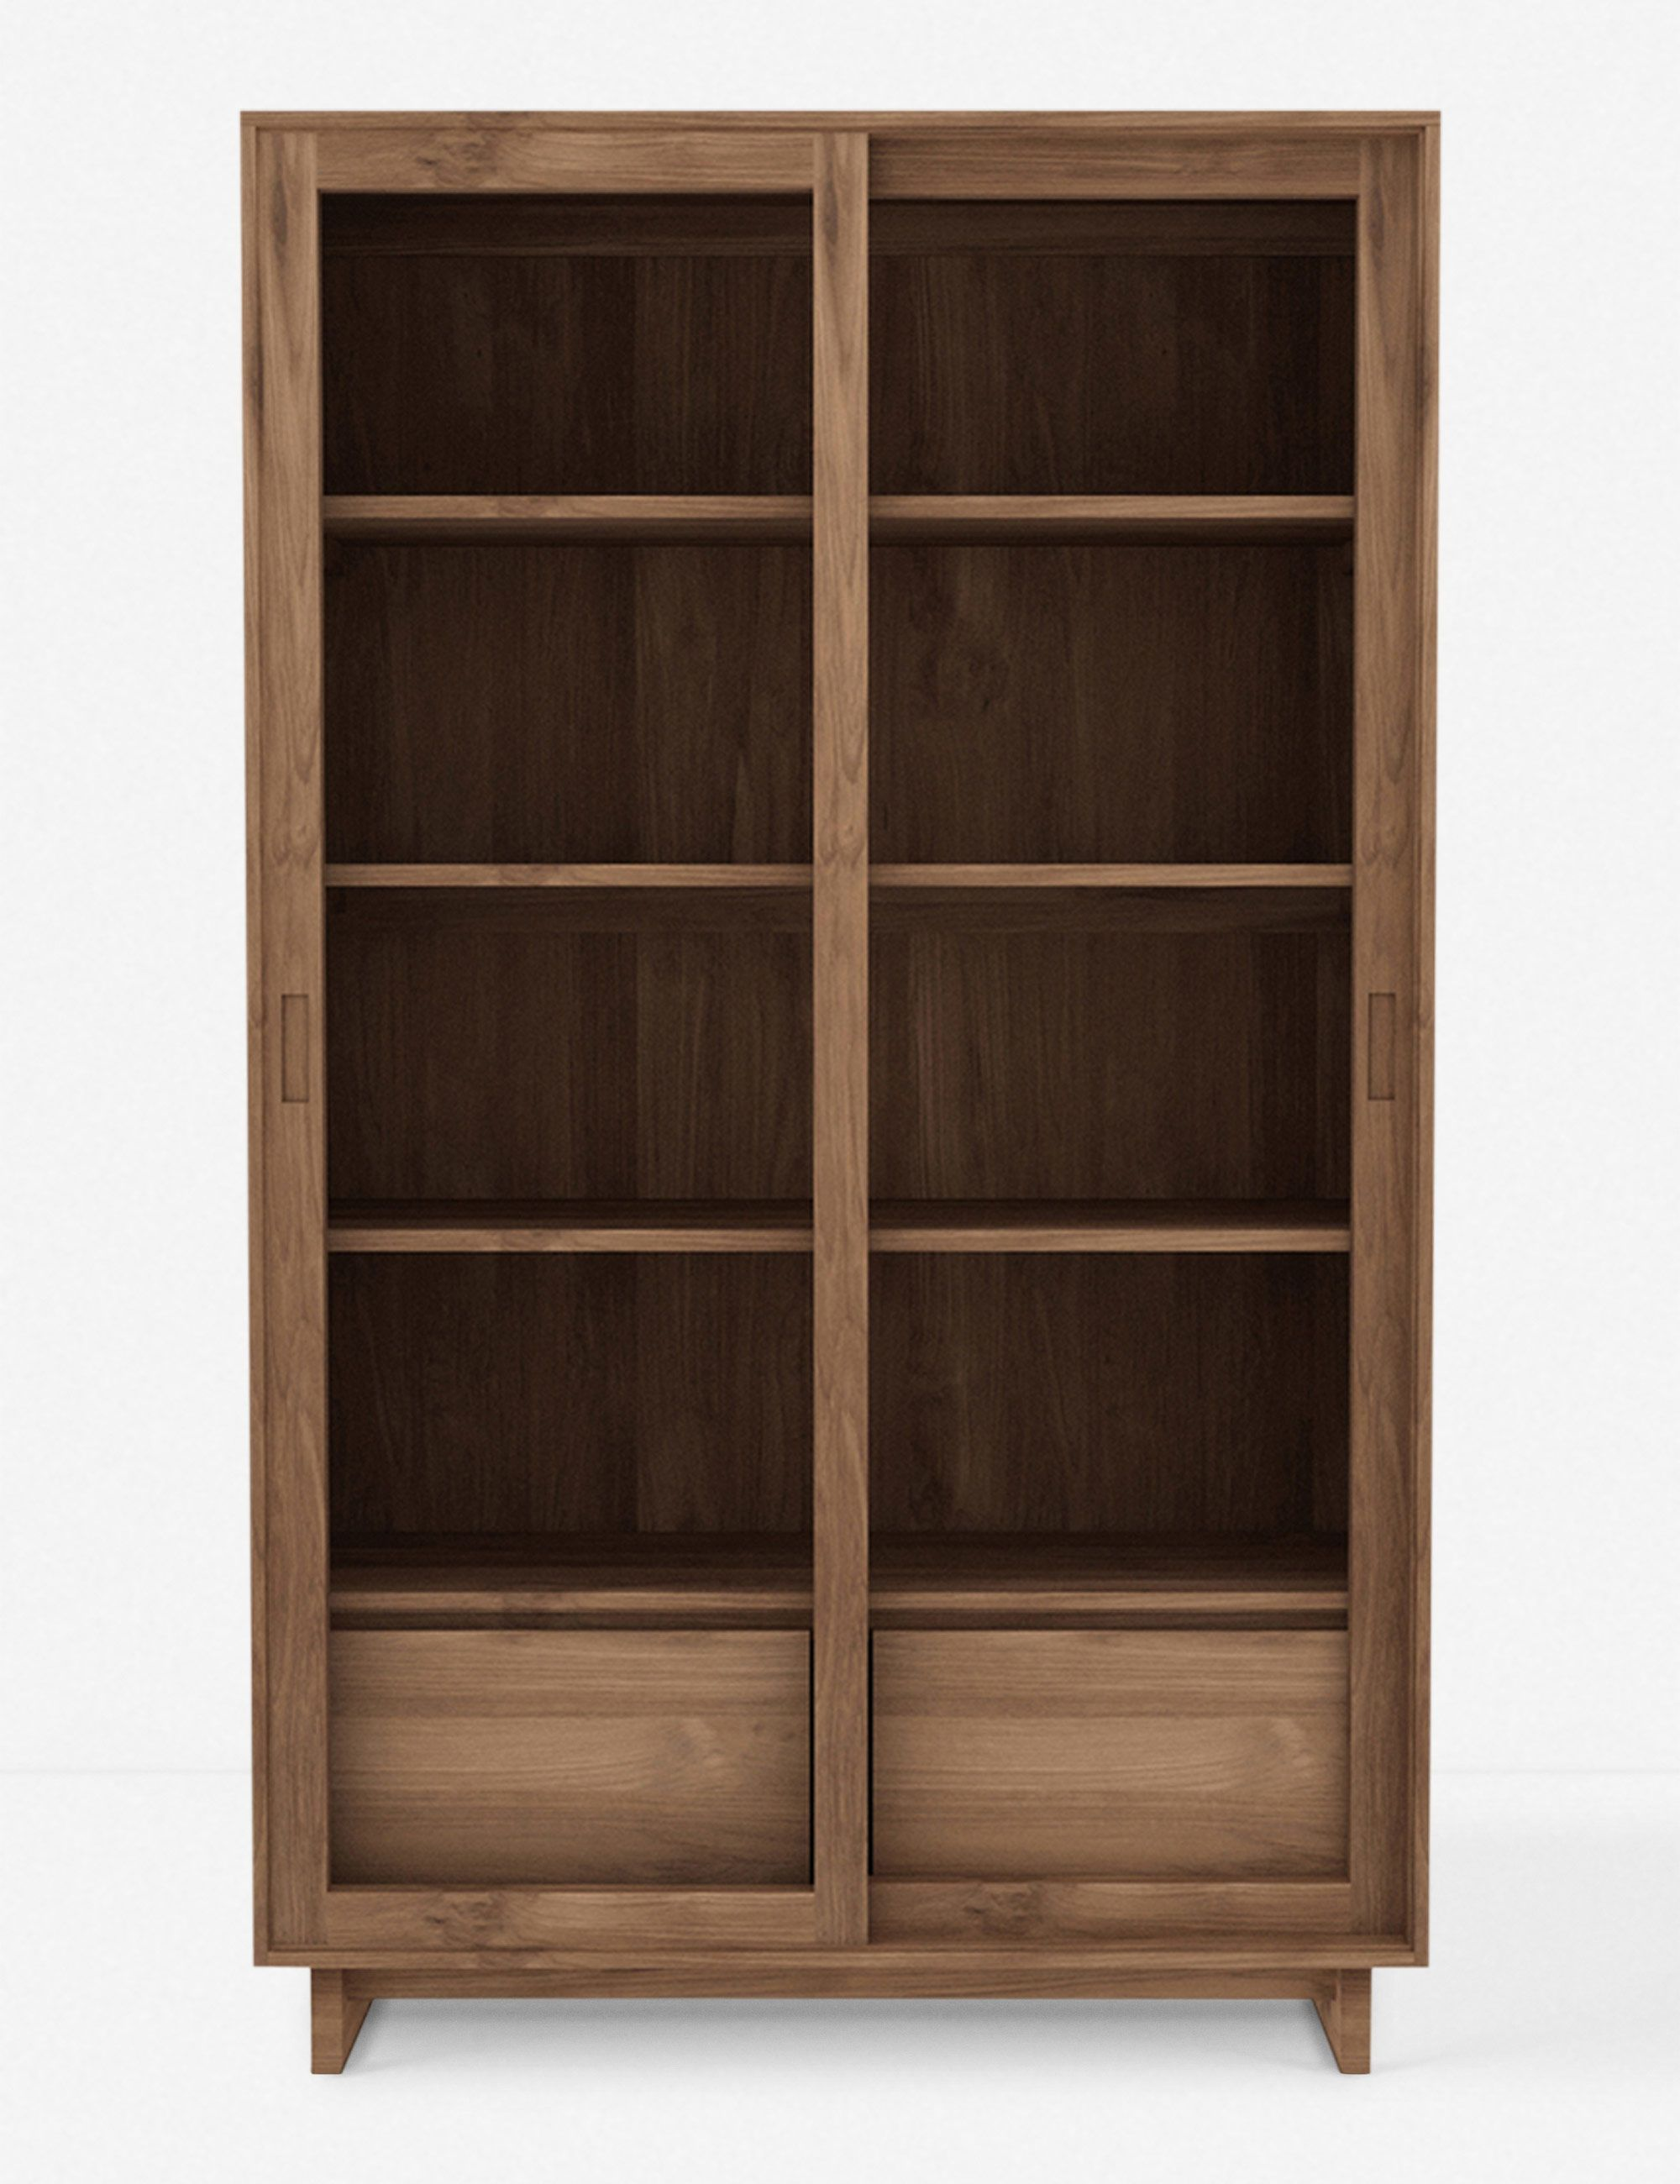 Cutout Details Make The Drawers On This Bookshelf Pop Creating Cool Dimension For An Understated Glass Cabinet Doors Sliding Glass Door Living Room Wall Units